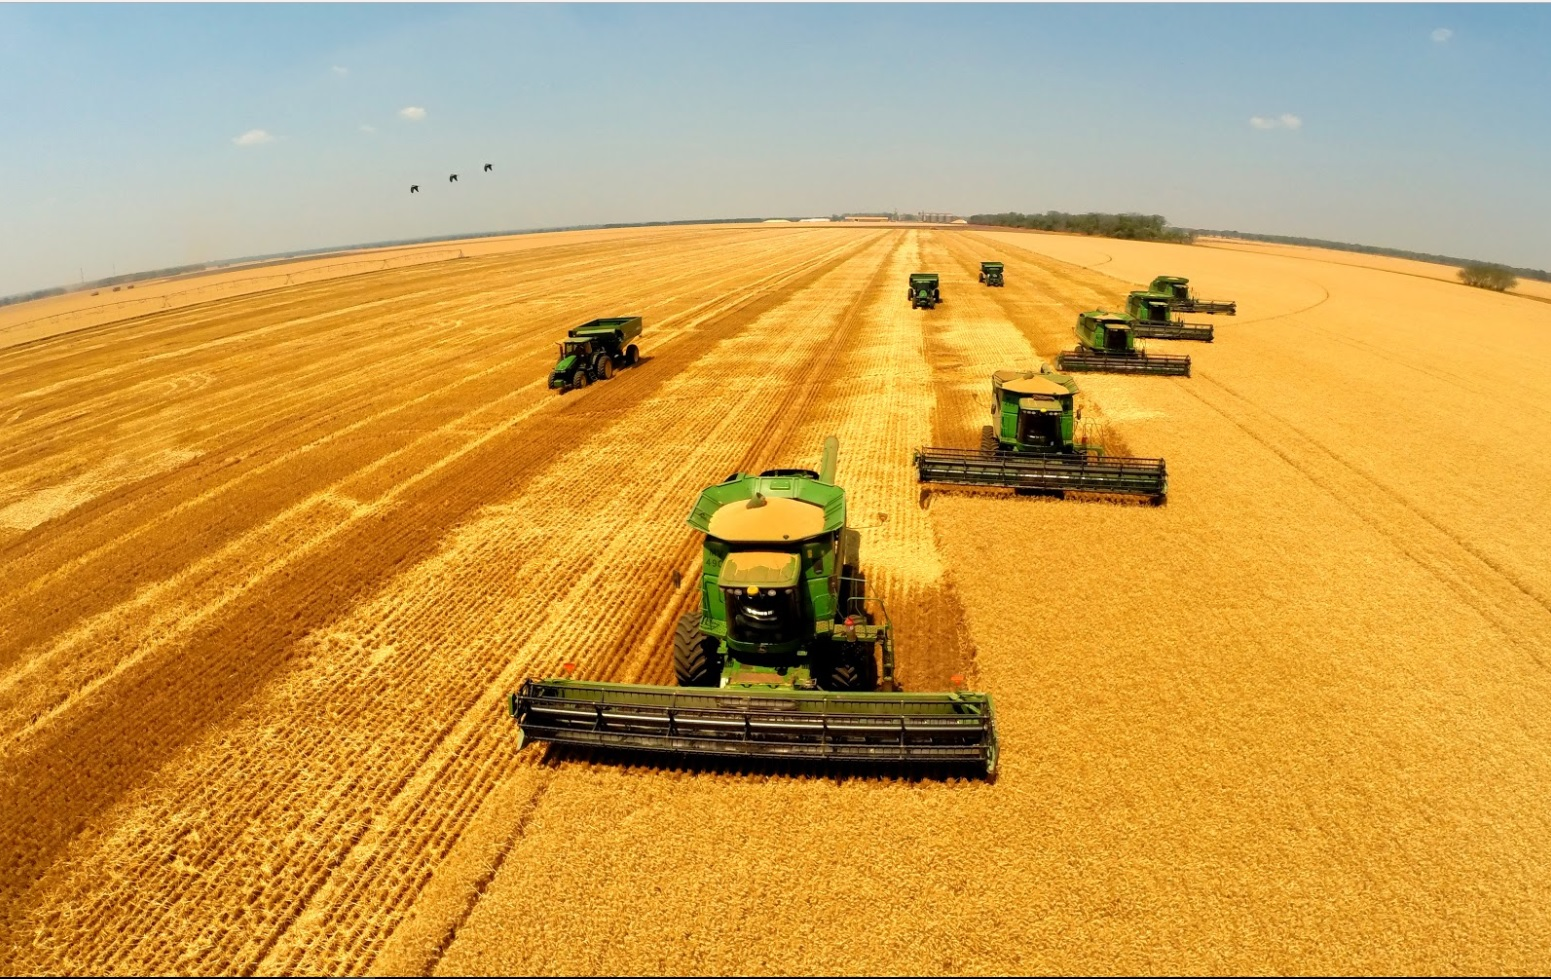 Farmers harvest crops from a field using machines